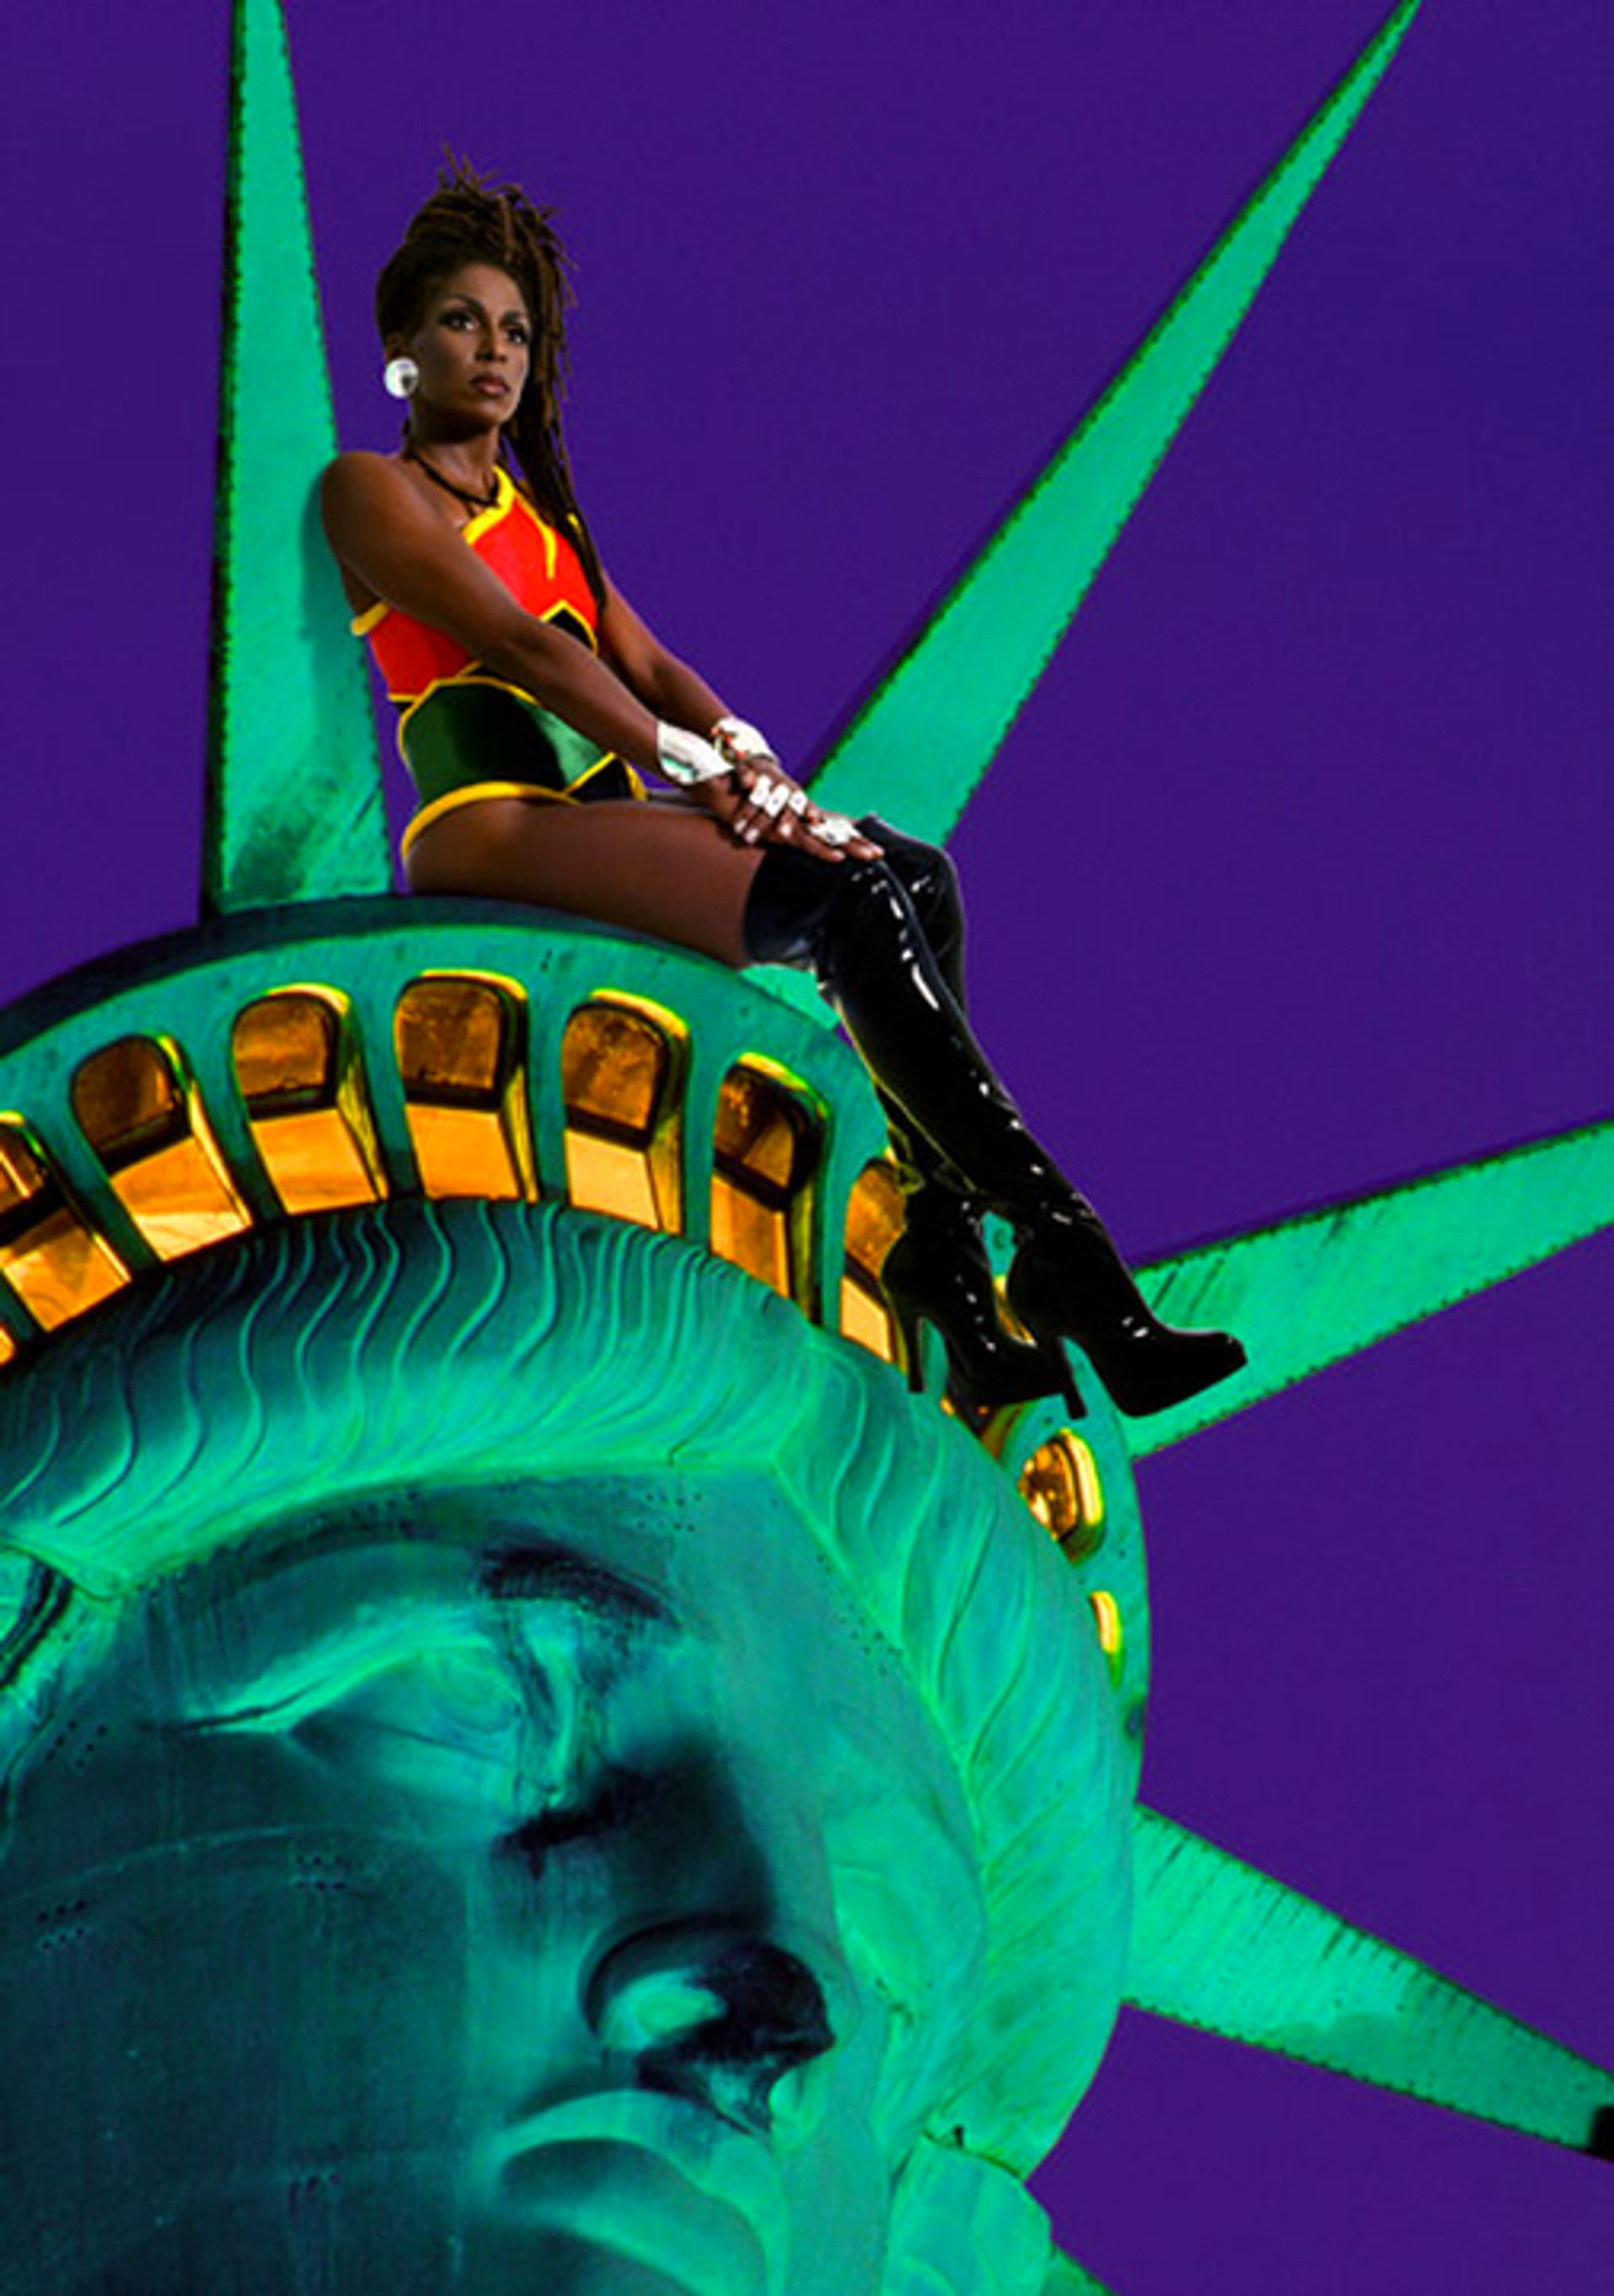 Renee Cox, Chillin' with Lady Liberty (1998) Courtesy Renee Cox